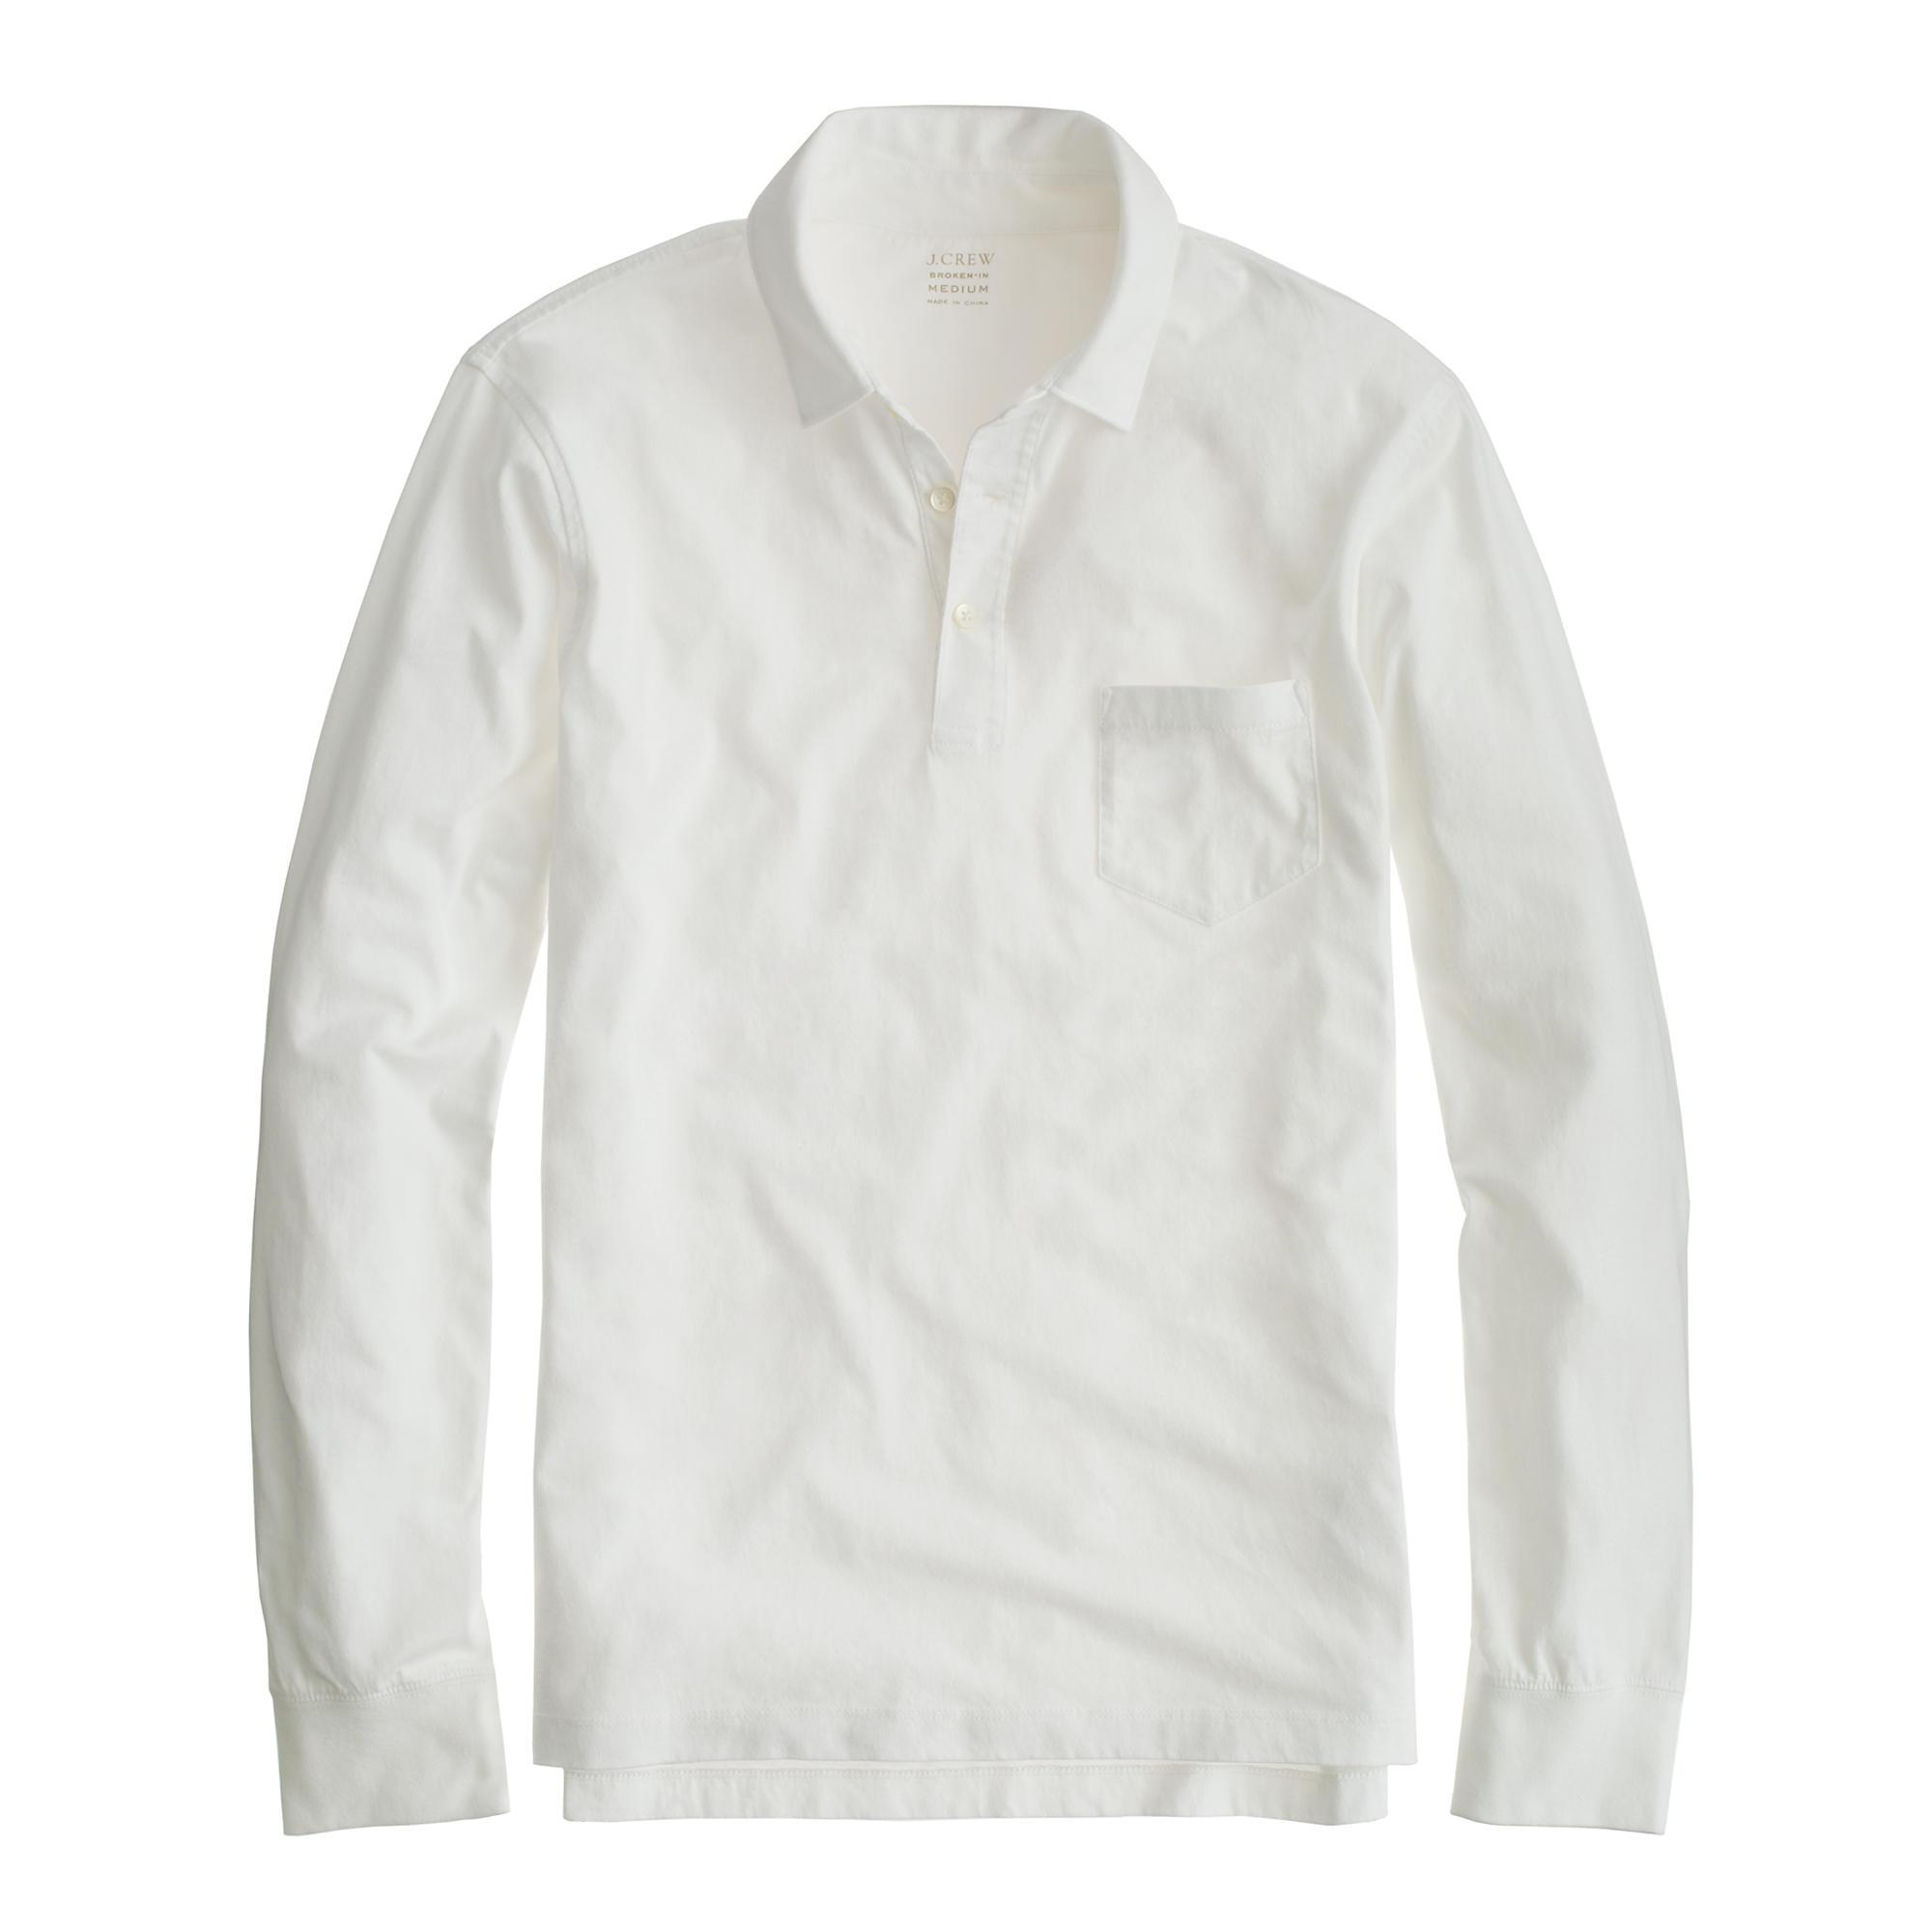 268a5c589f1d J.Crew Tall Broken-in Long-sleeve Pocket Polo Shirt in White for Men ...